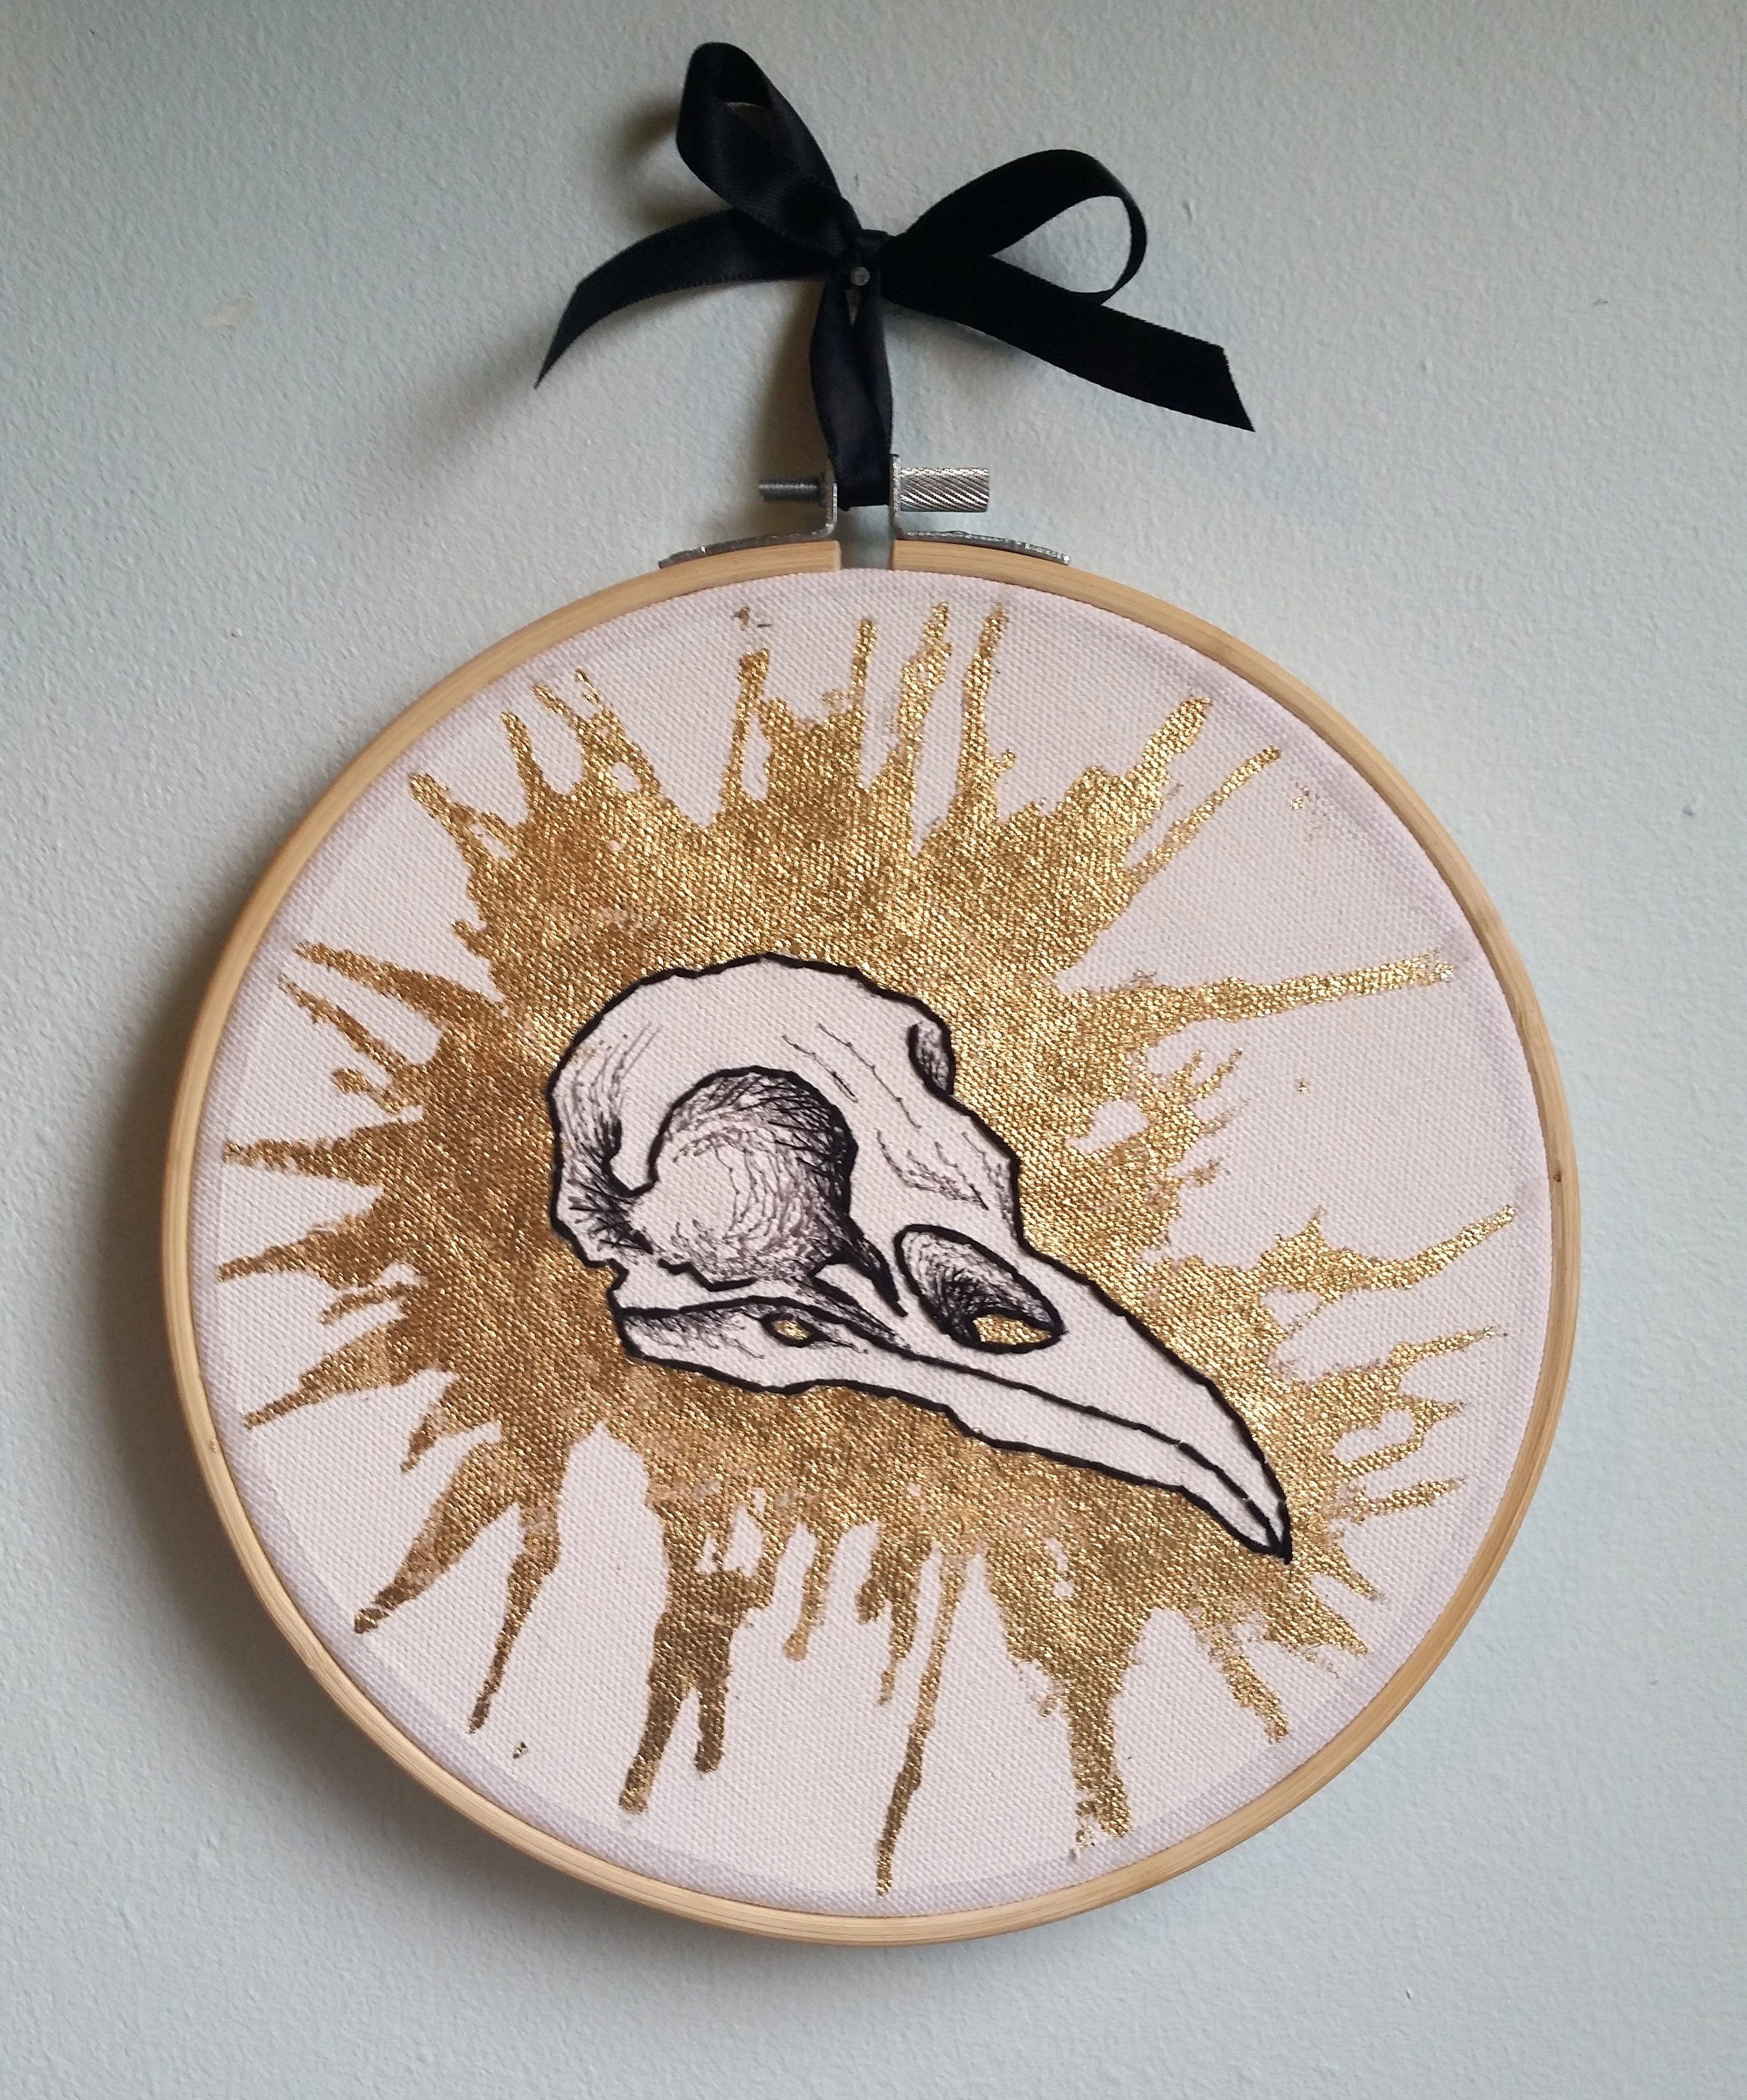 "Corvus corax (Common raven) , metal leaf, thread, and embroidery floss on canvas, 8"" x 8"", $300"